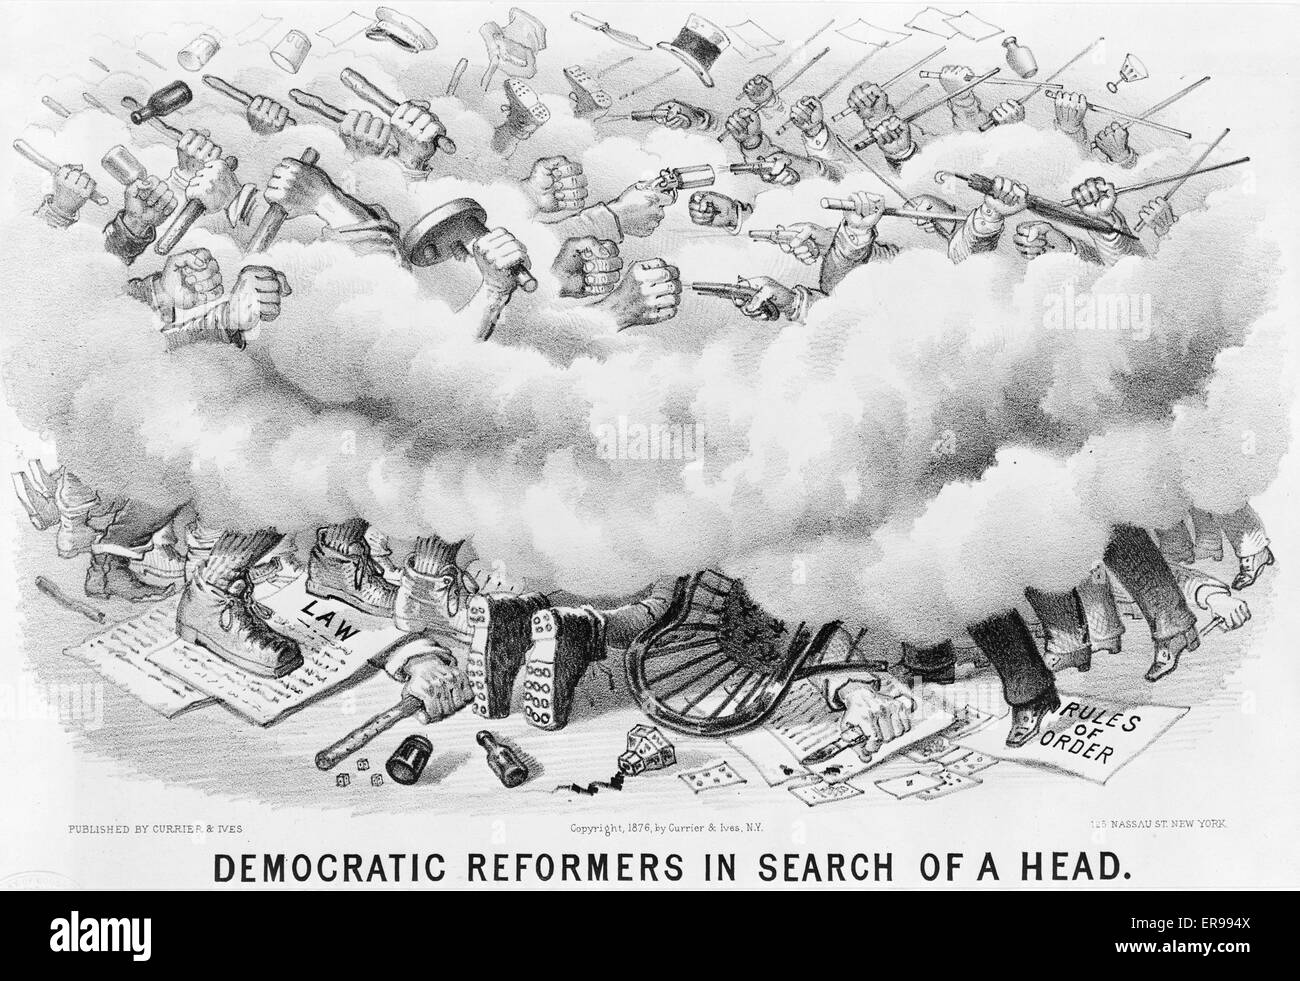 Democratic reformers in search of a head. A mild parody on the strife and corruption within the New York Democratic - Stock Image